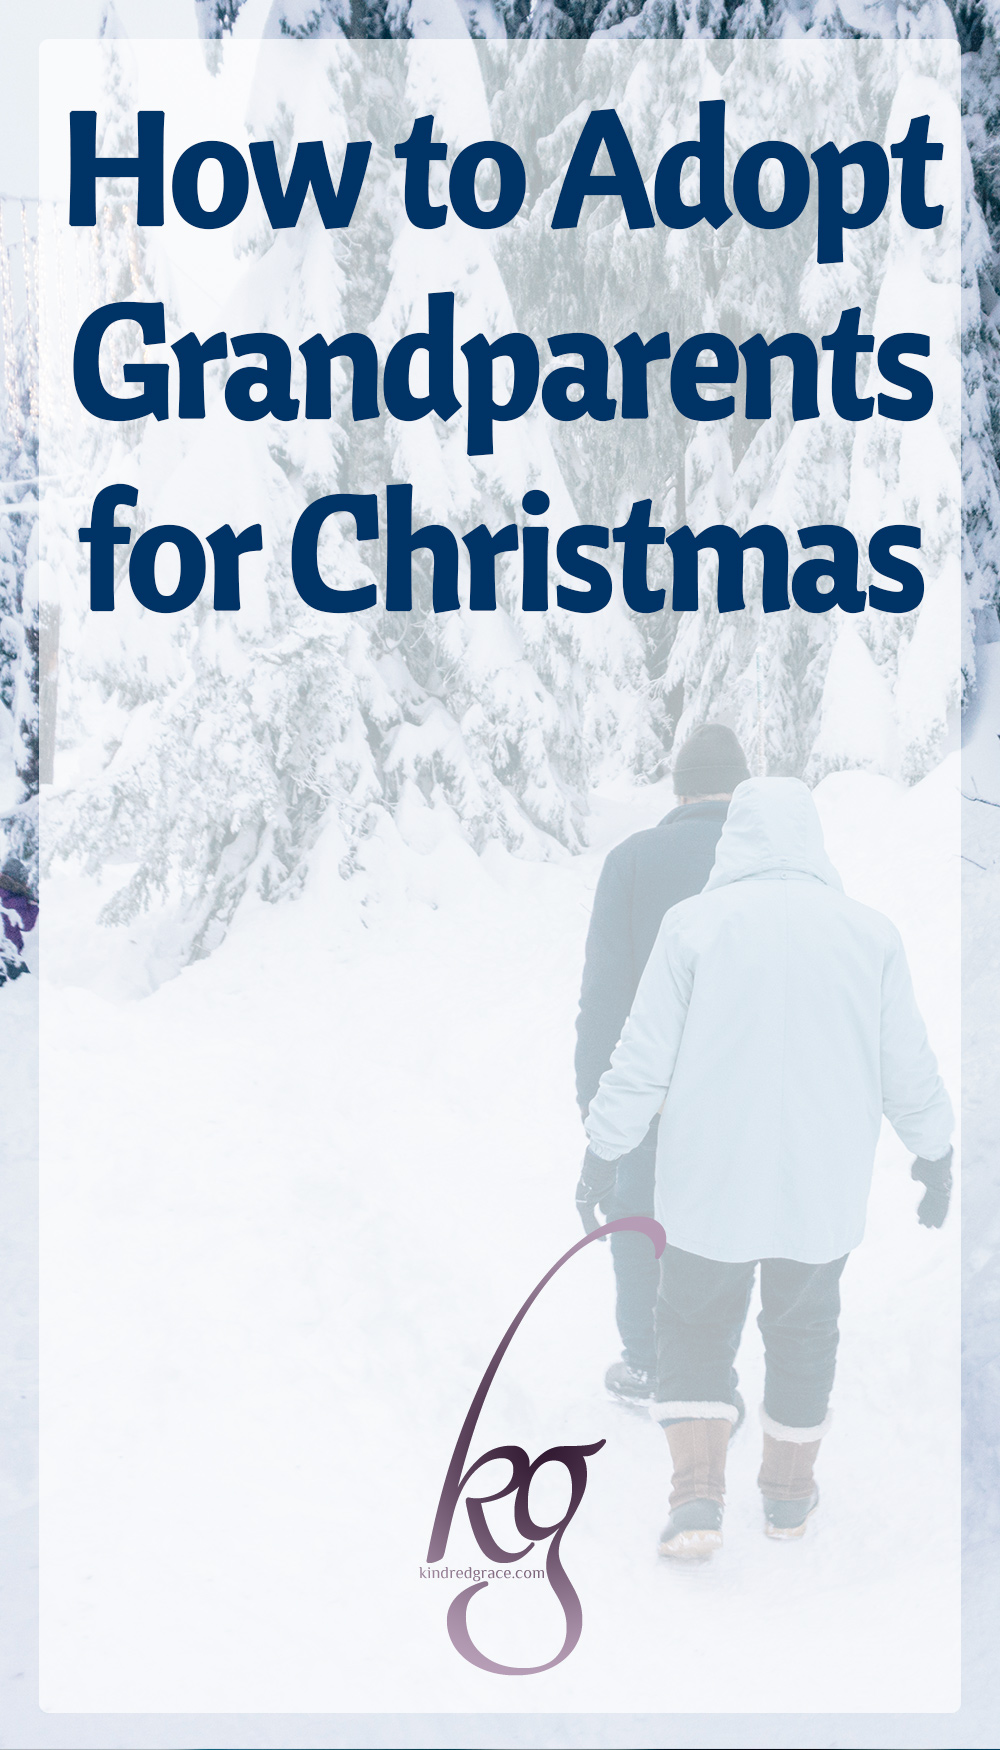 How to Adopt Grandparents for Christmas via @KindredGrace